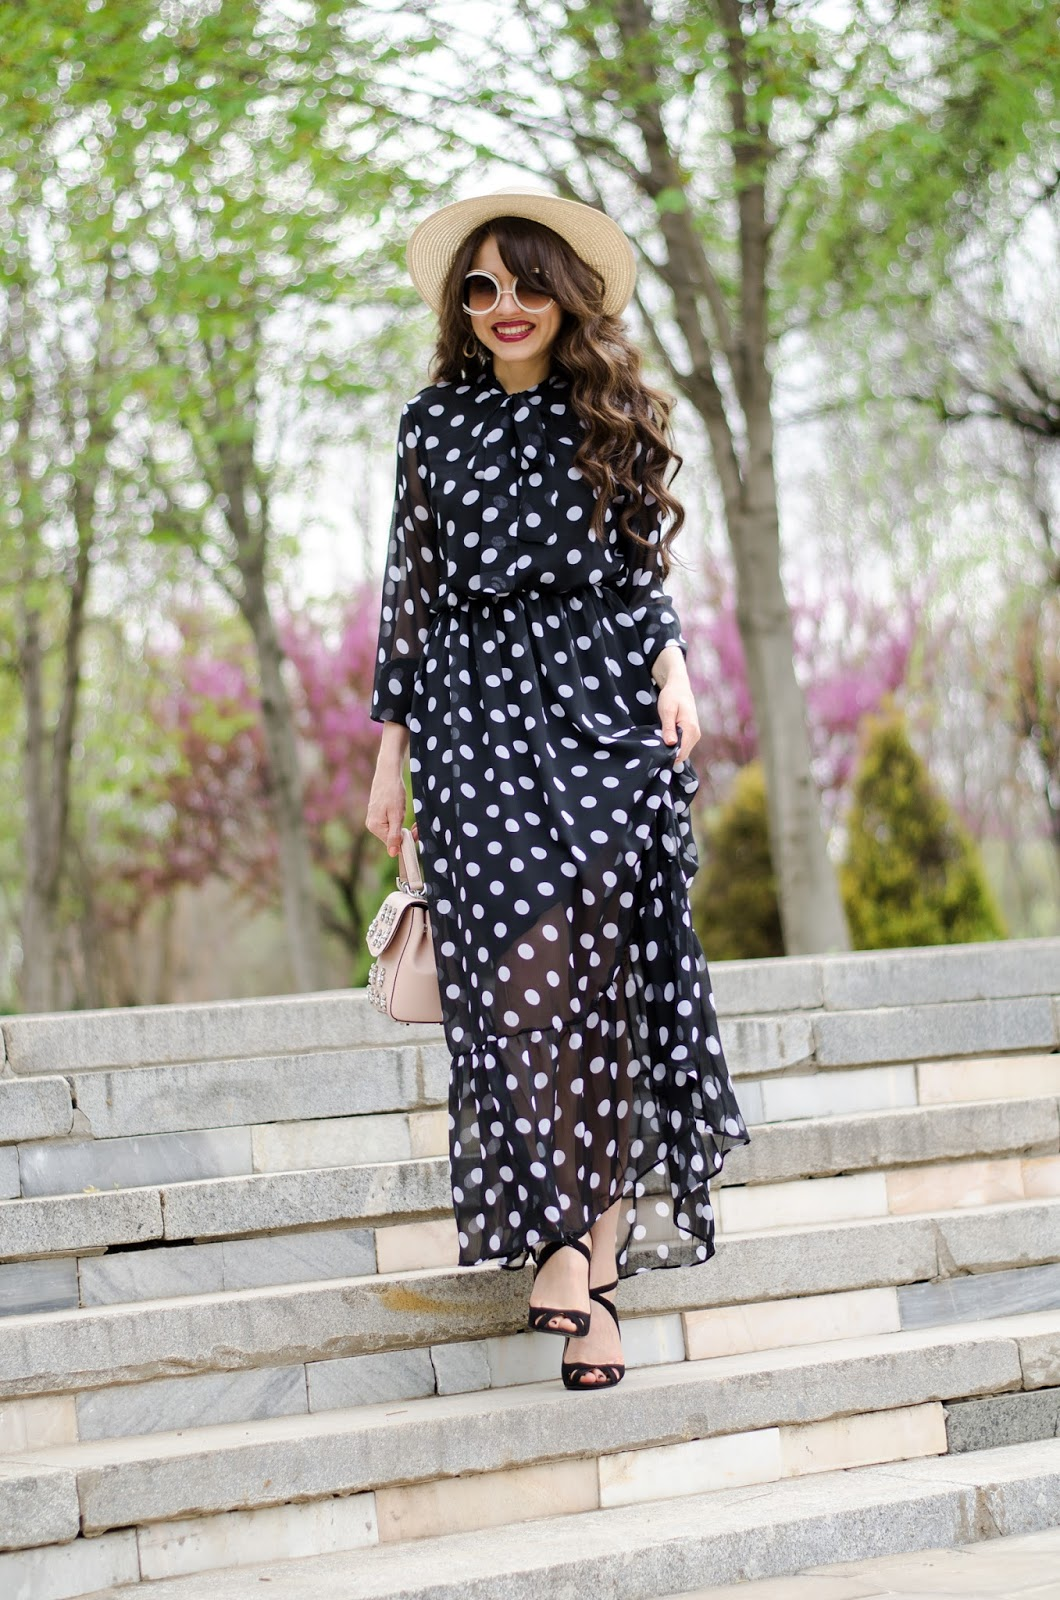 fashion blogger diyorasnotes diyora beta polka dot dress maxi straw hat heels koto romantic look outfit